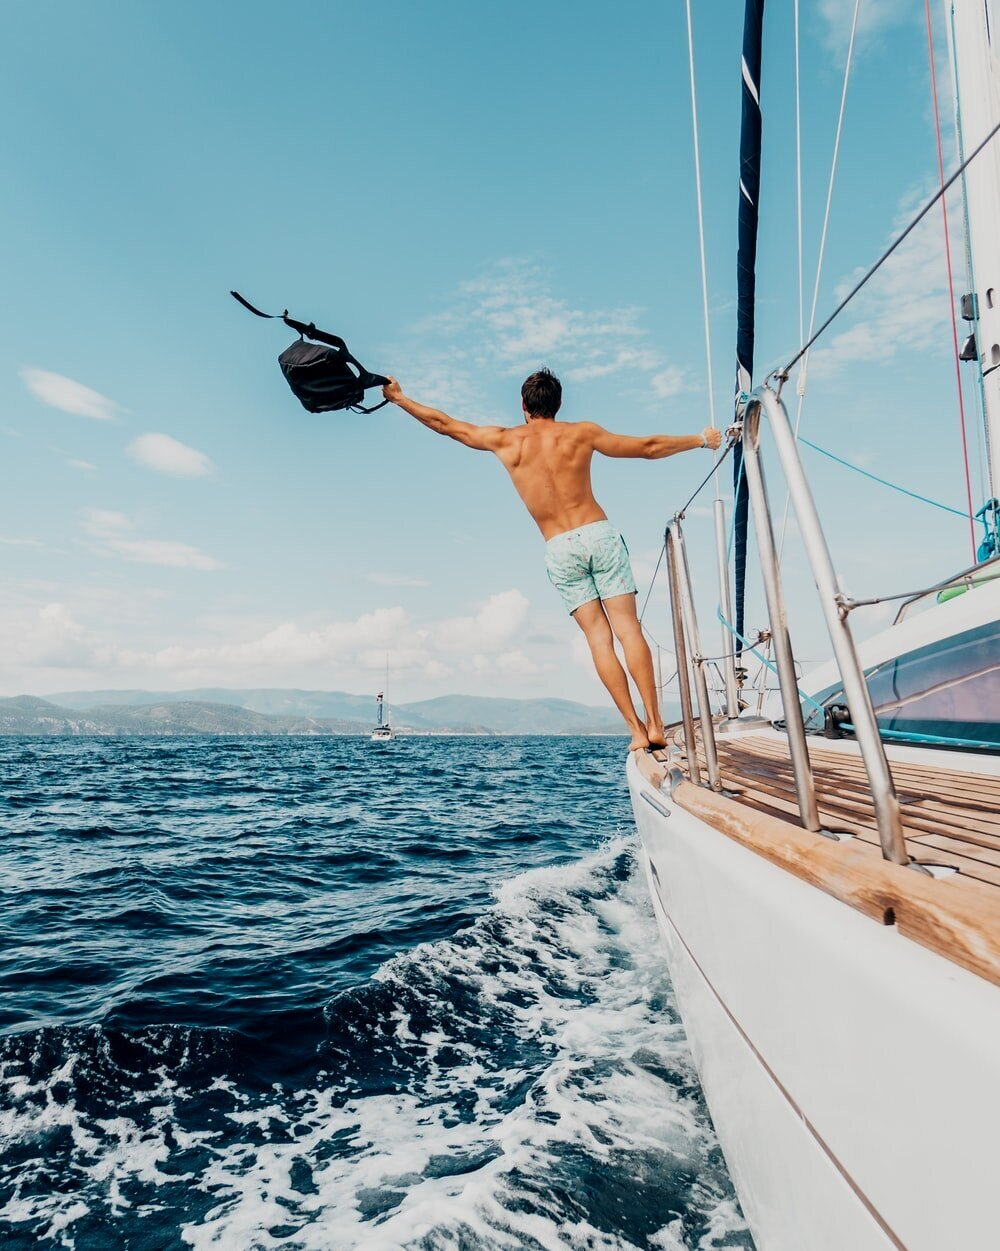 Looking for an adventure? - Try a sailing trip with Professional Photos Included